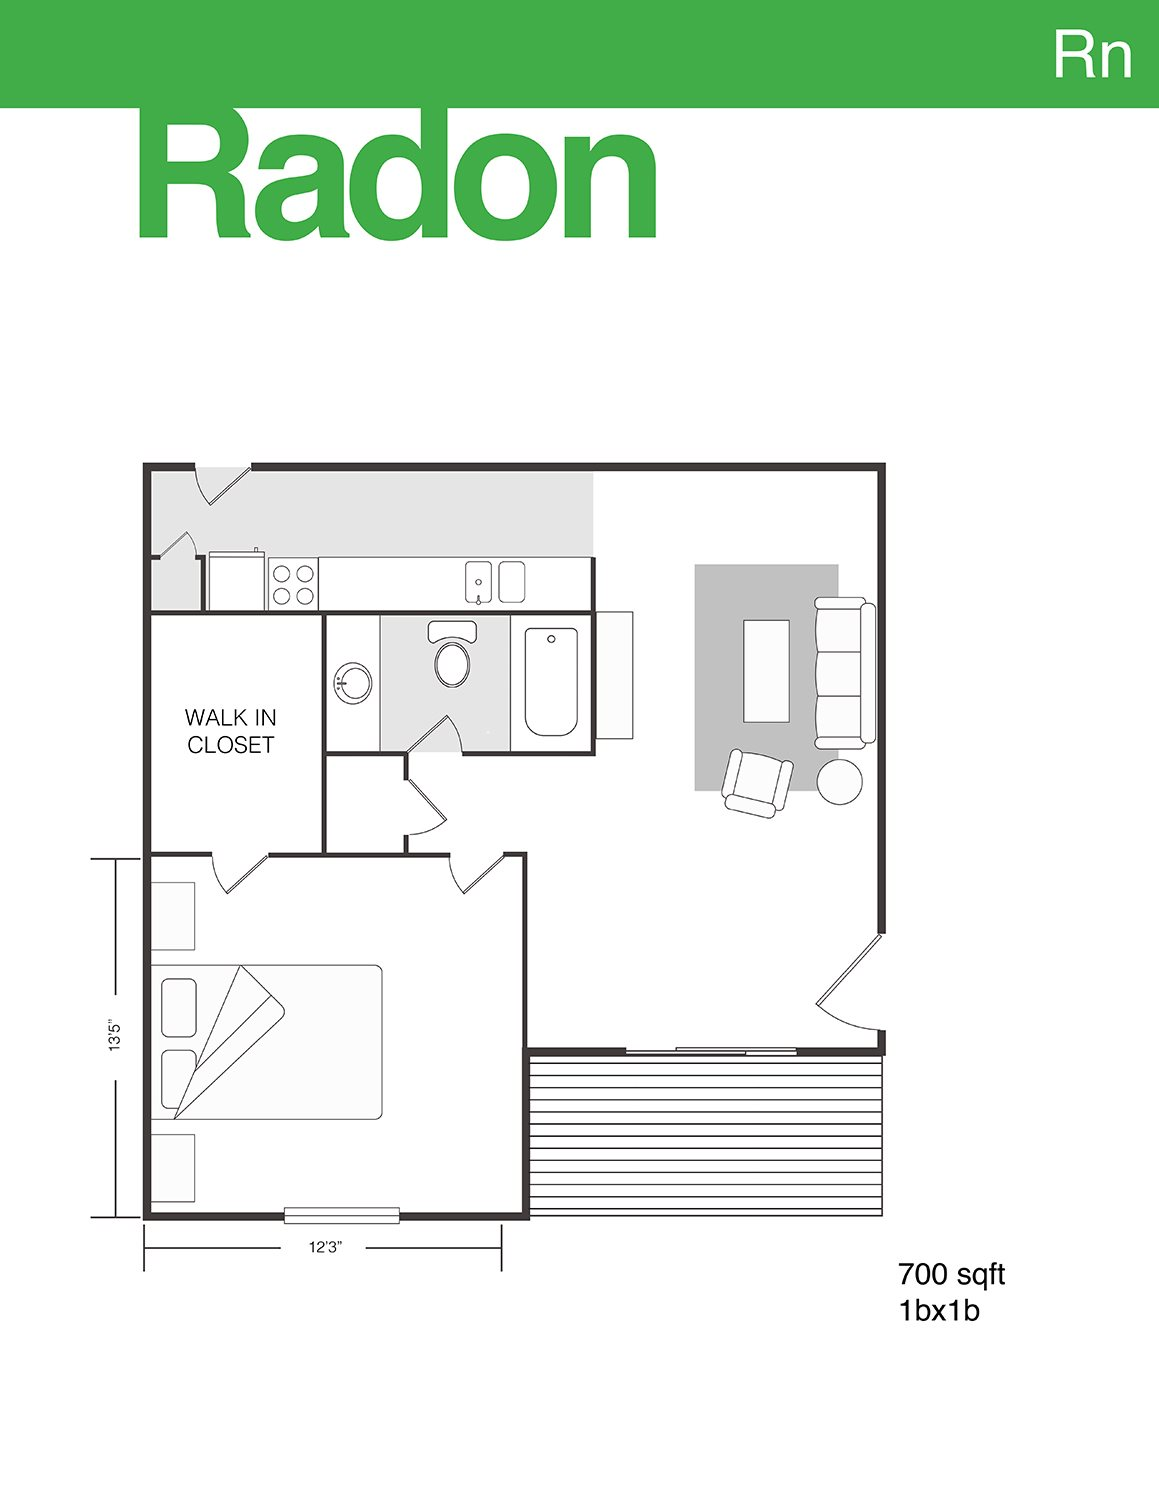 Radon Floor Plan 5